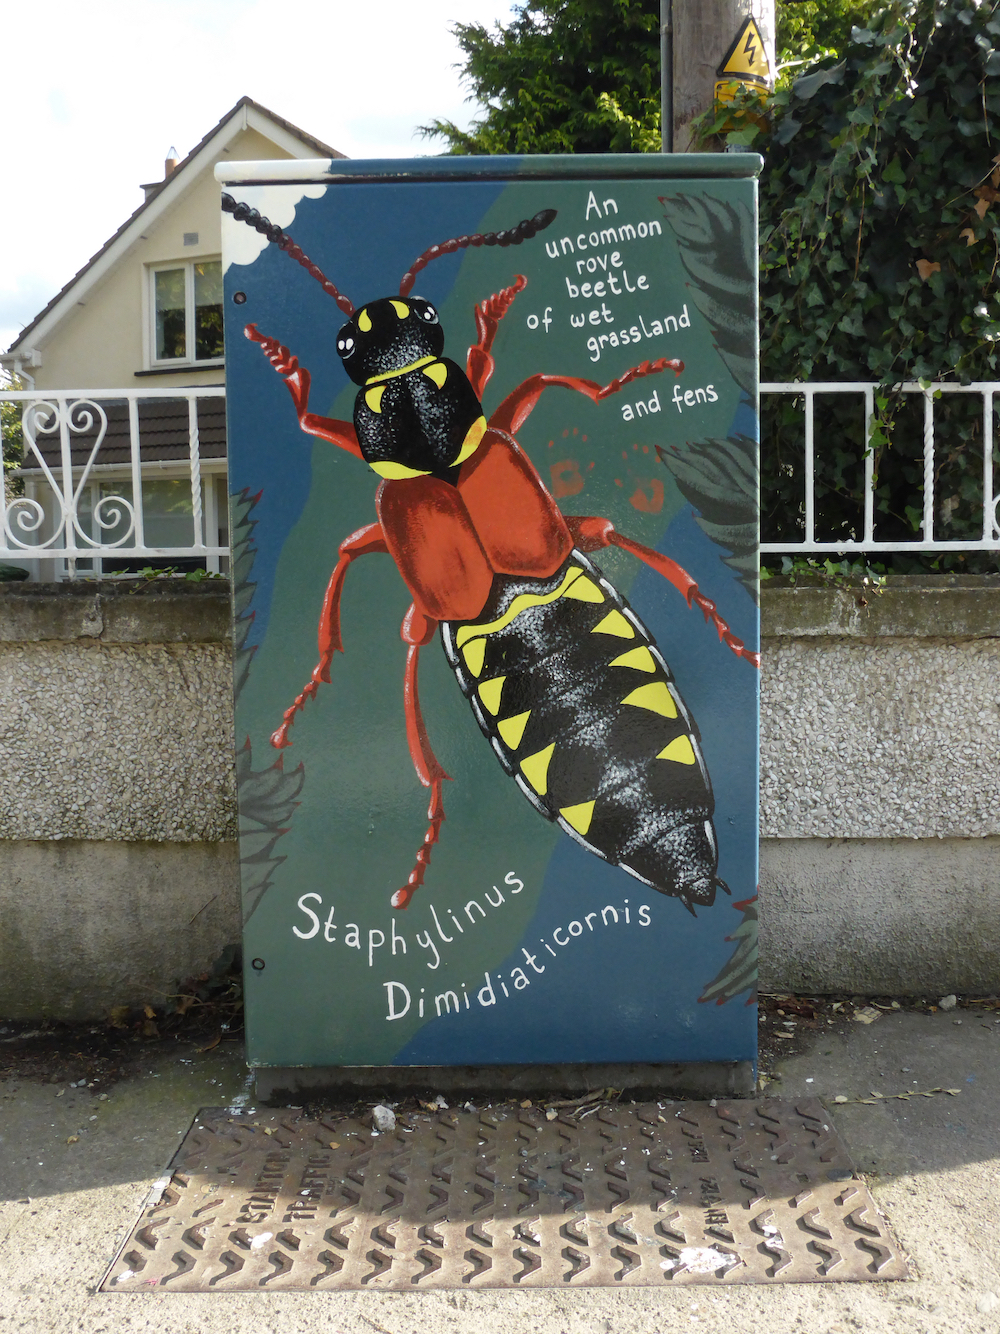 Rove Beetle  for  DublinCanvas.com , 2017. On the corner of Terenure Rd. West and Greenlea Road, Dublin 6.